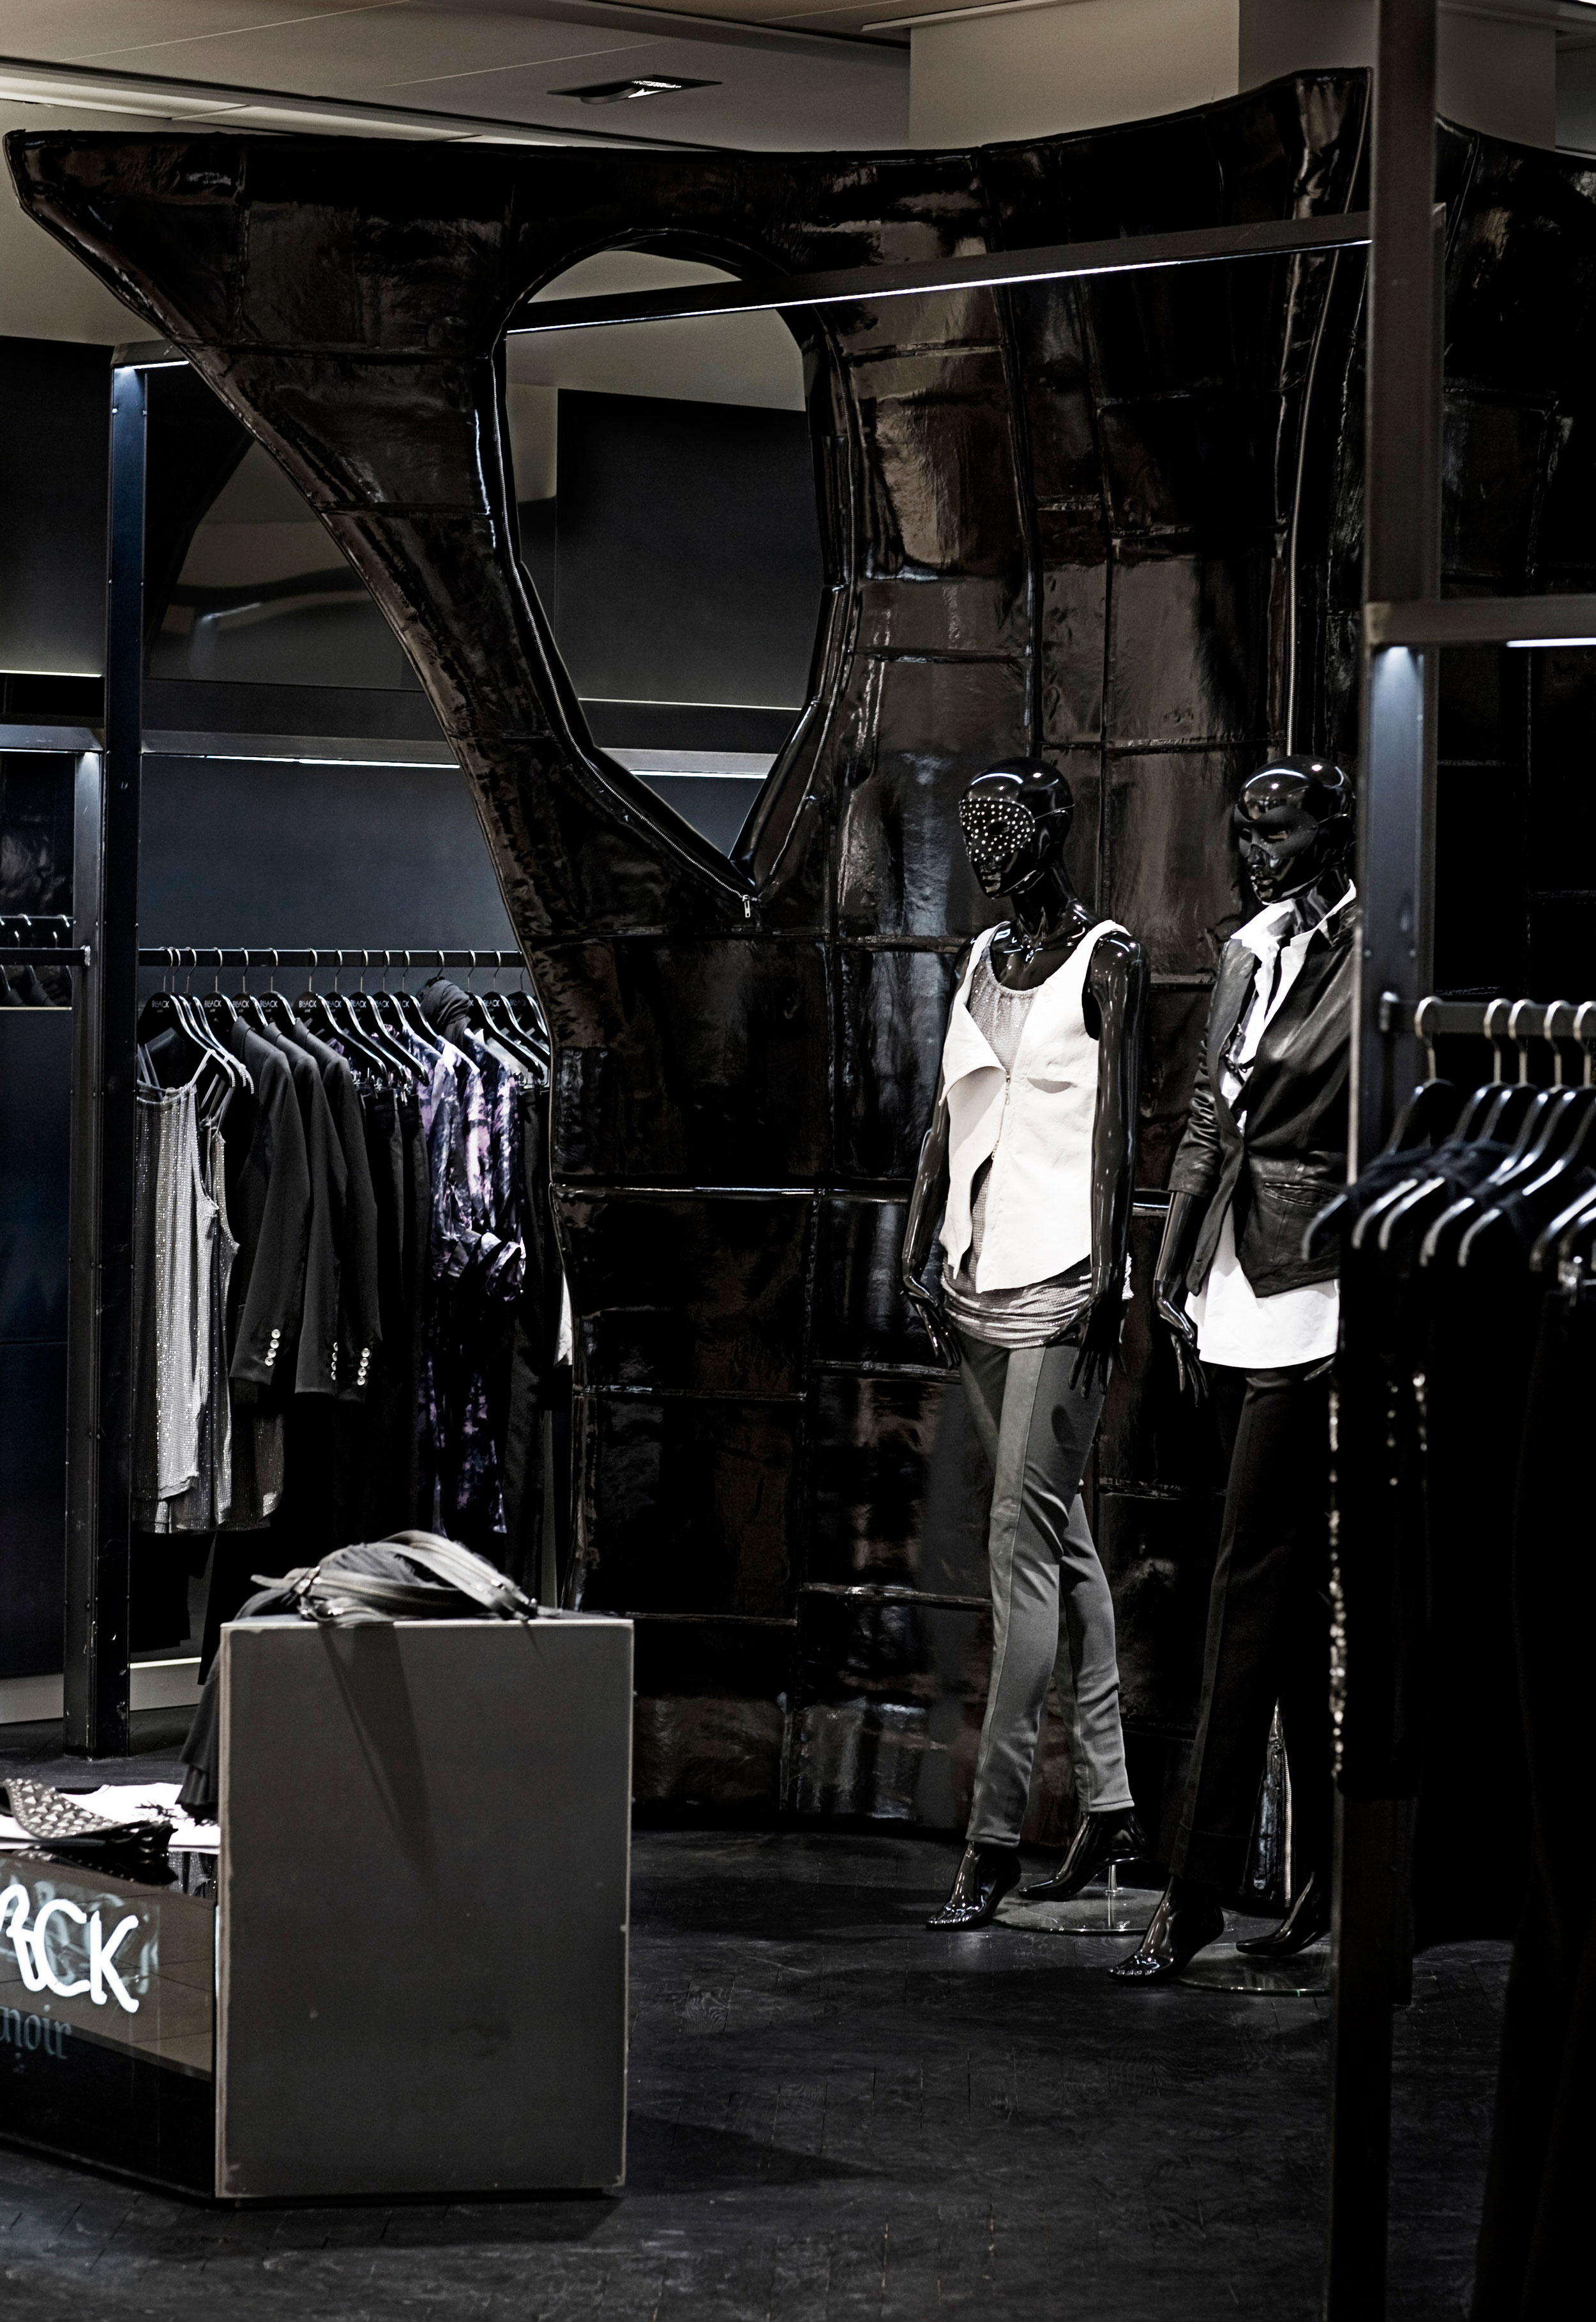 Interior design of Bllack Noir by Johannes Torpe Studios featuring a black organically shaped sculpture and two mannequin figures